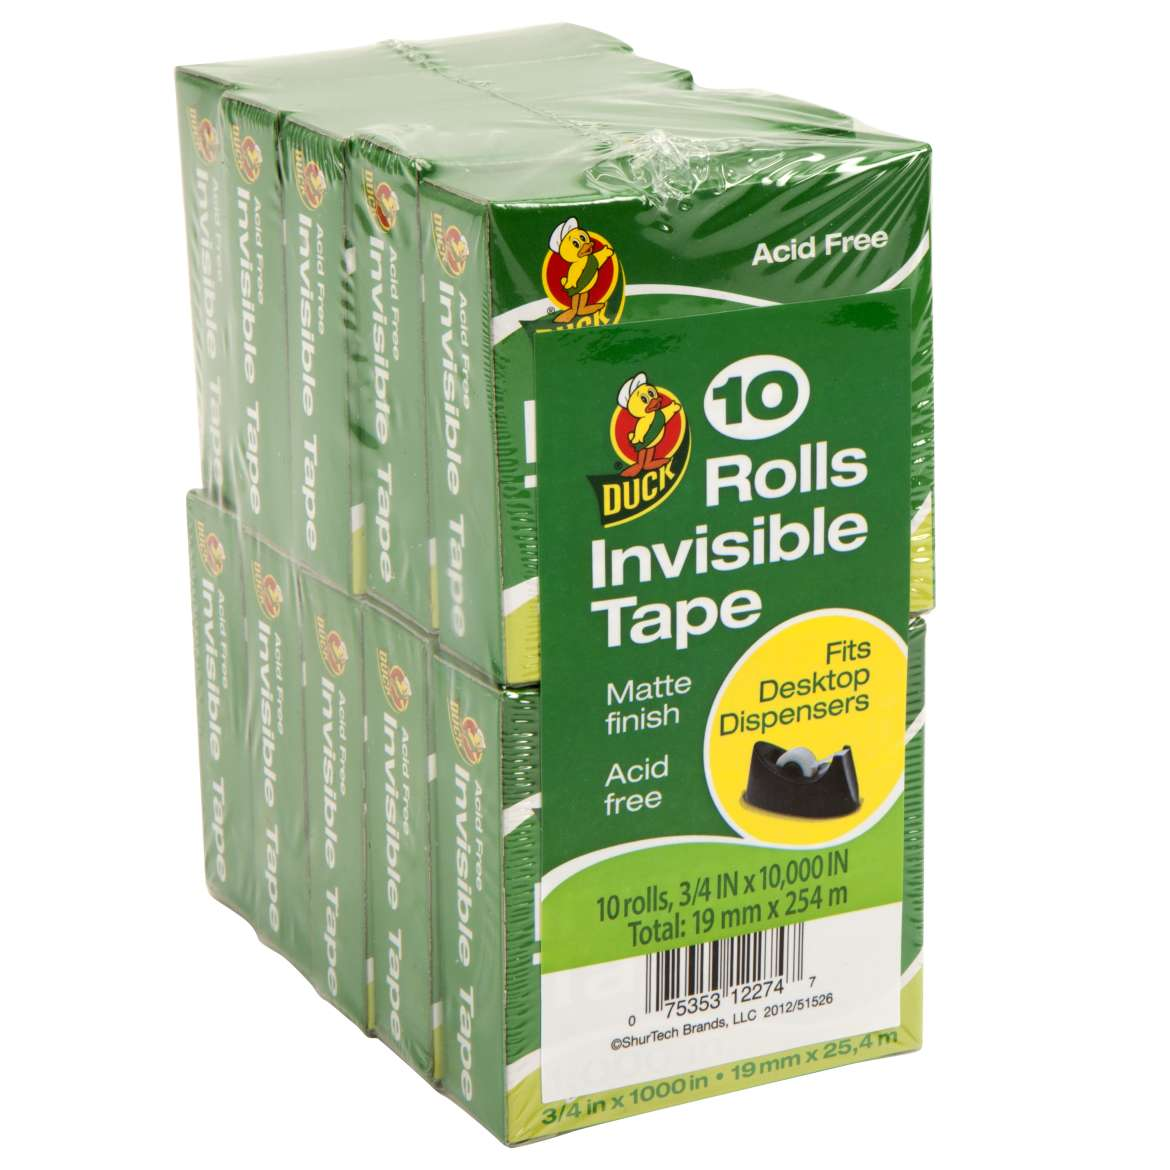 "Duck Brand 3/4"" x 1000"" Invisible Tape Rolls, 10 Pack"